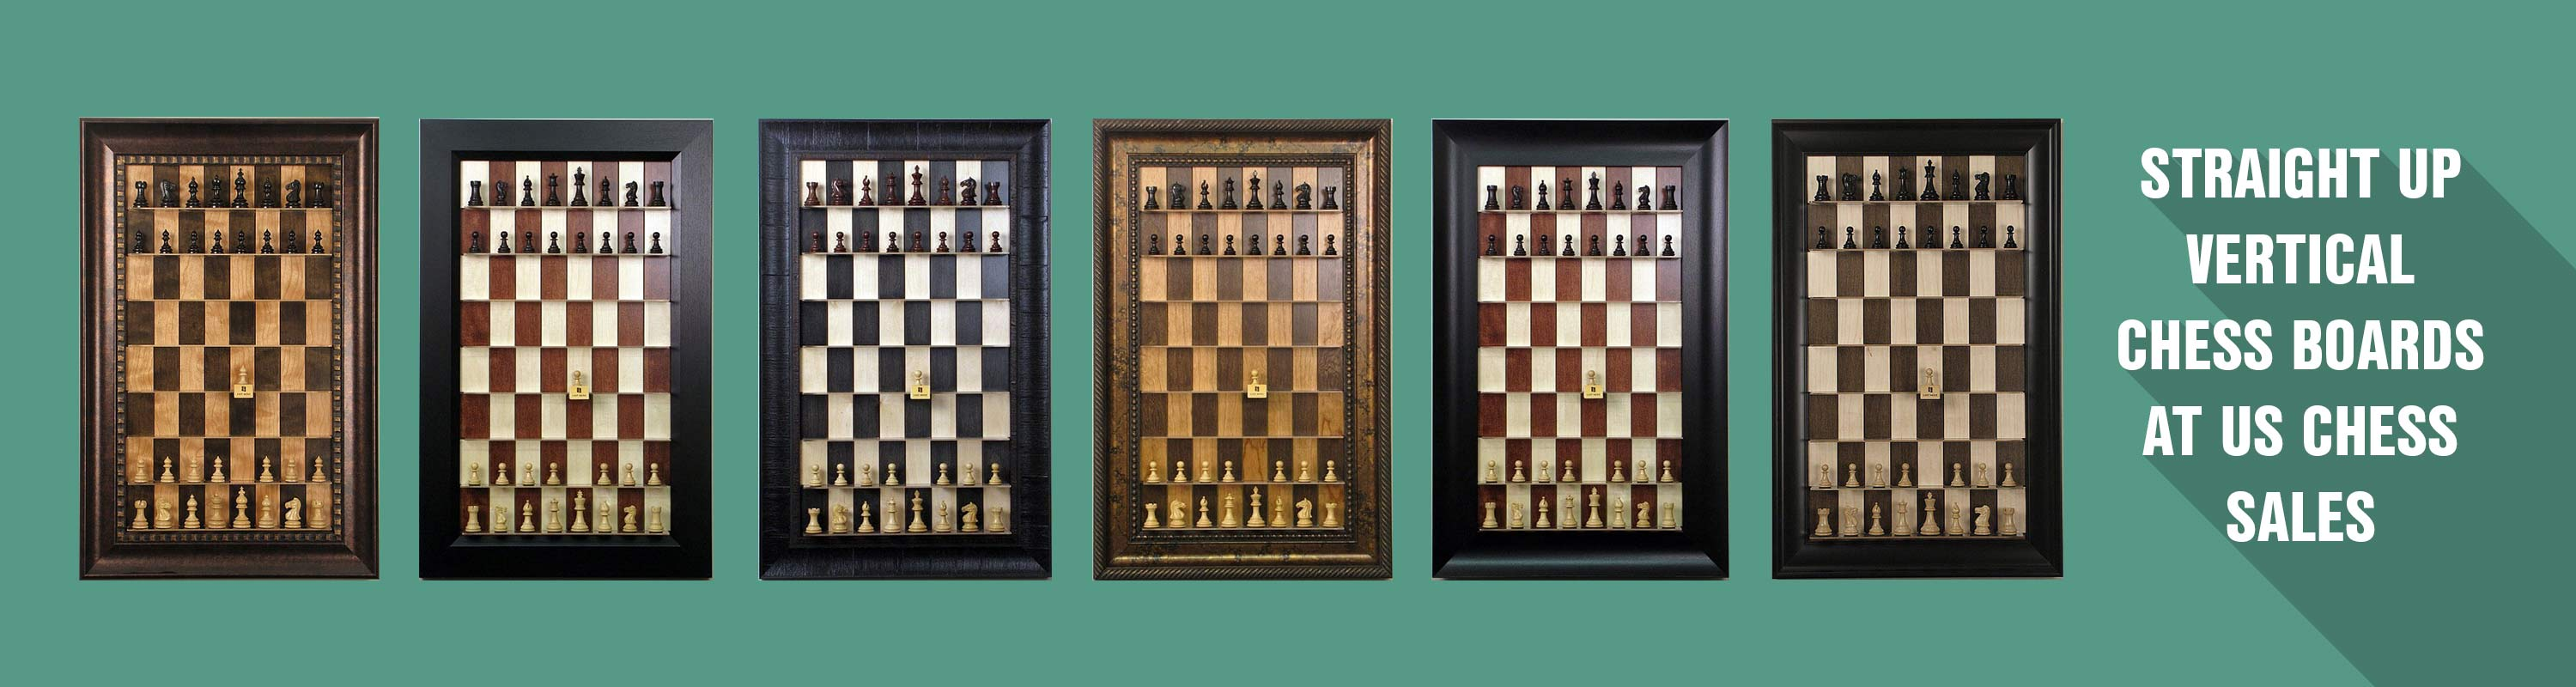 Straight Up Vertical Chess Boards At US Chess Sales